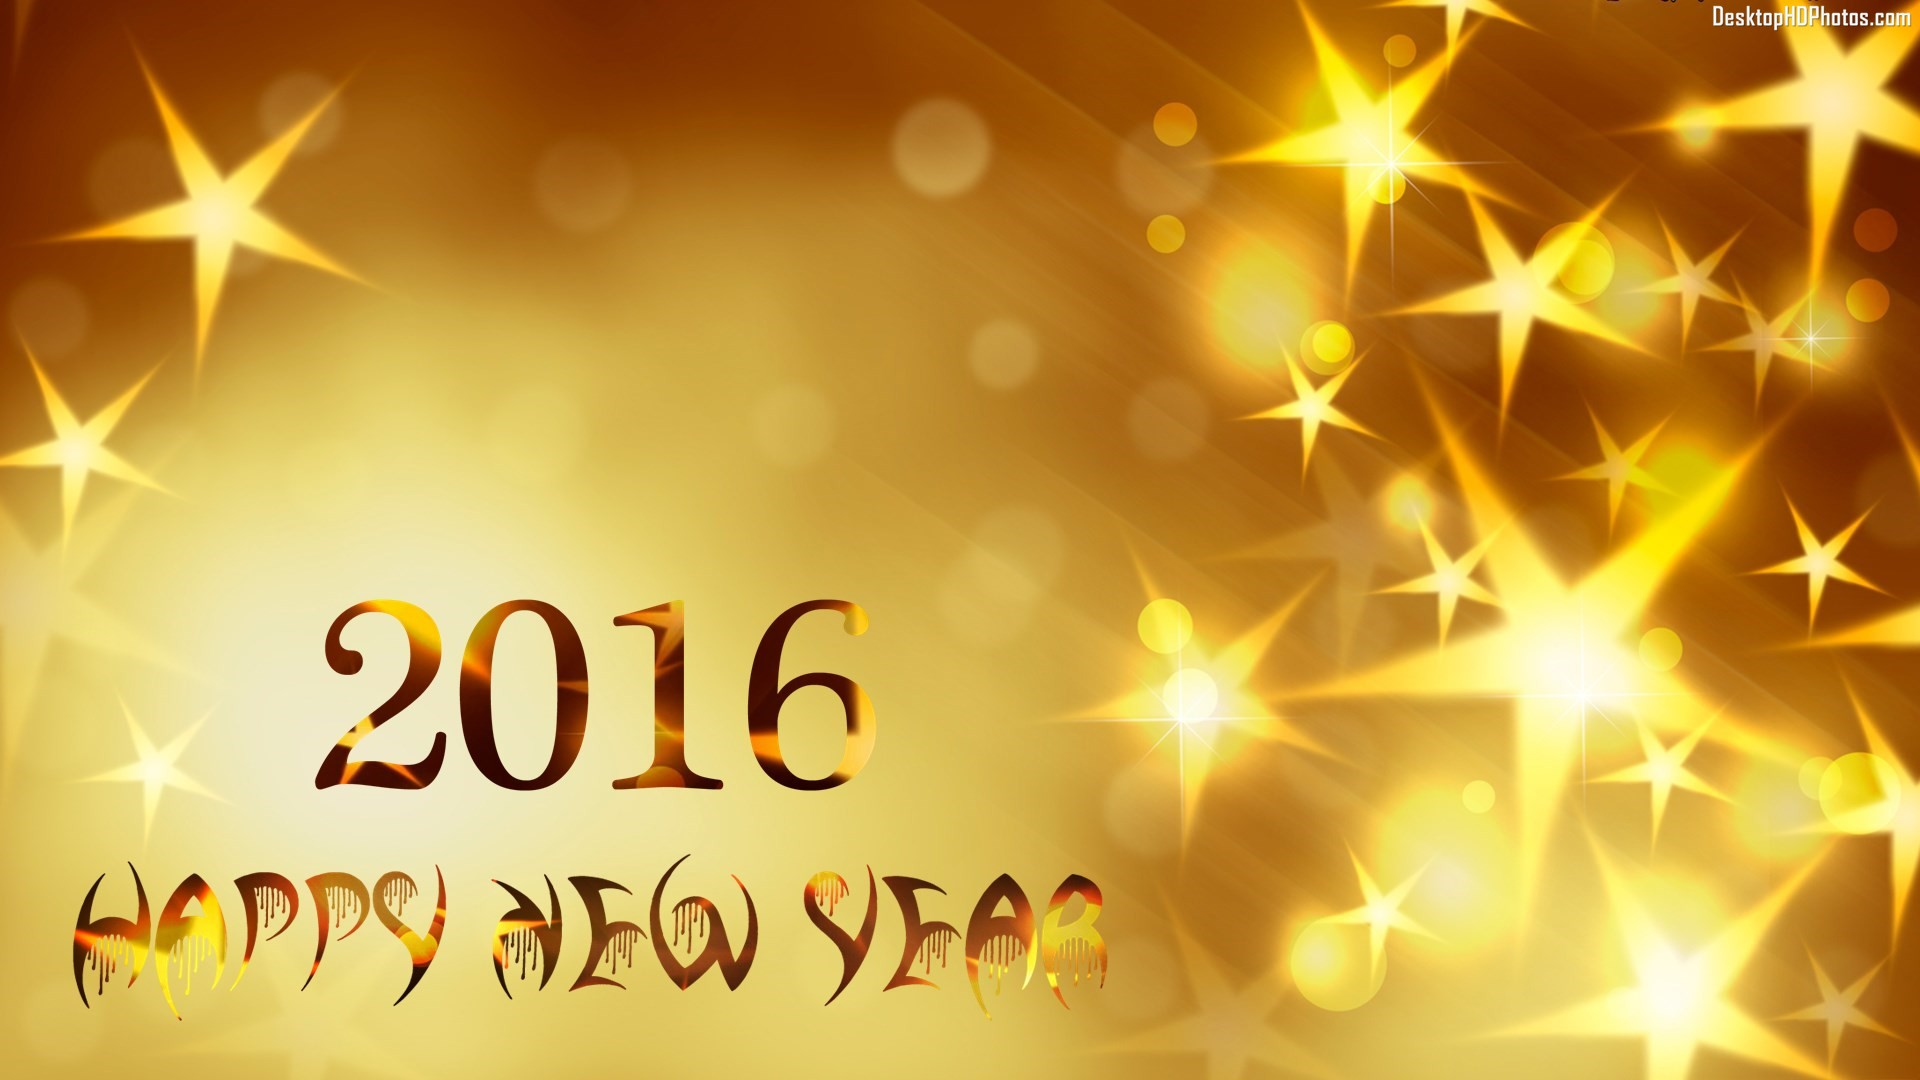 Quotes New Year 2016: Happy New Year 2016 HD Images, Wallpapers, Quotes